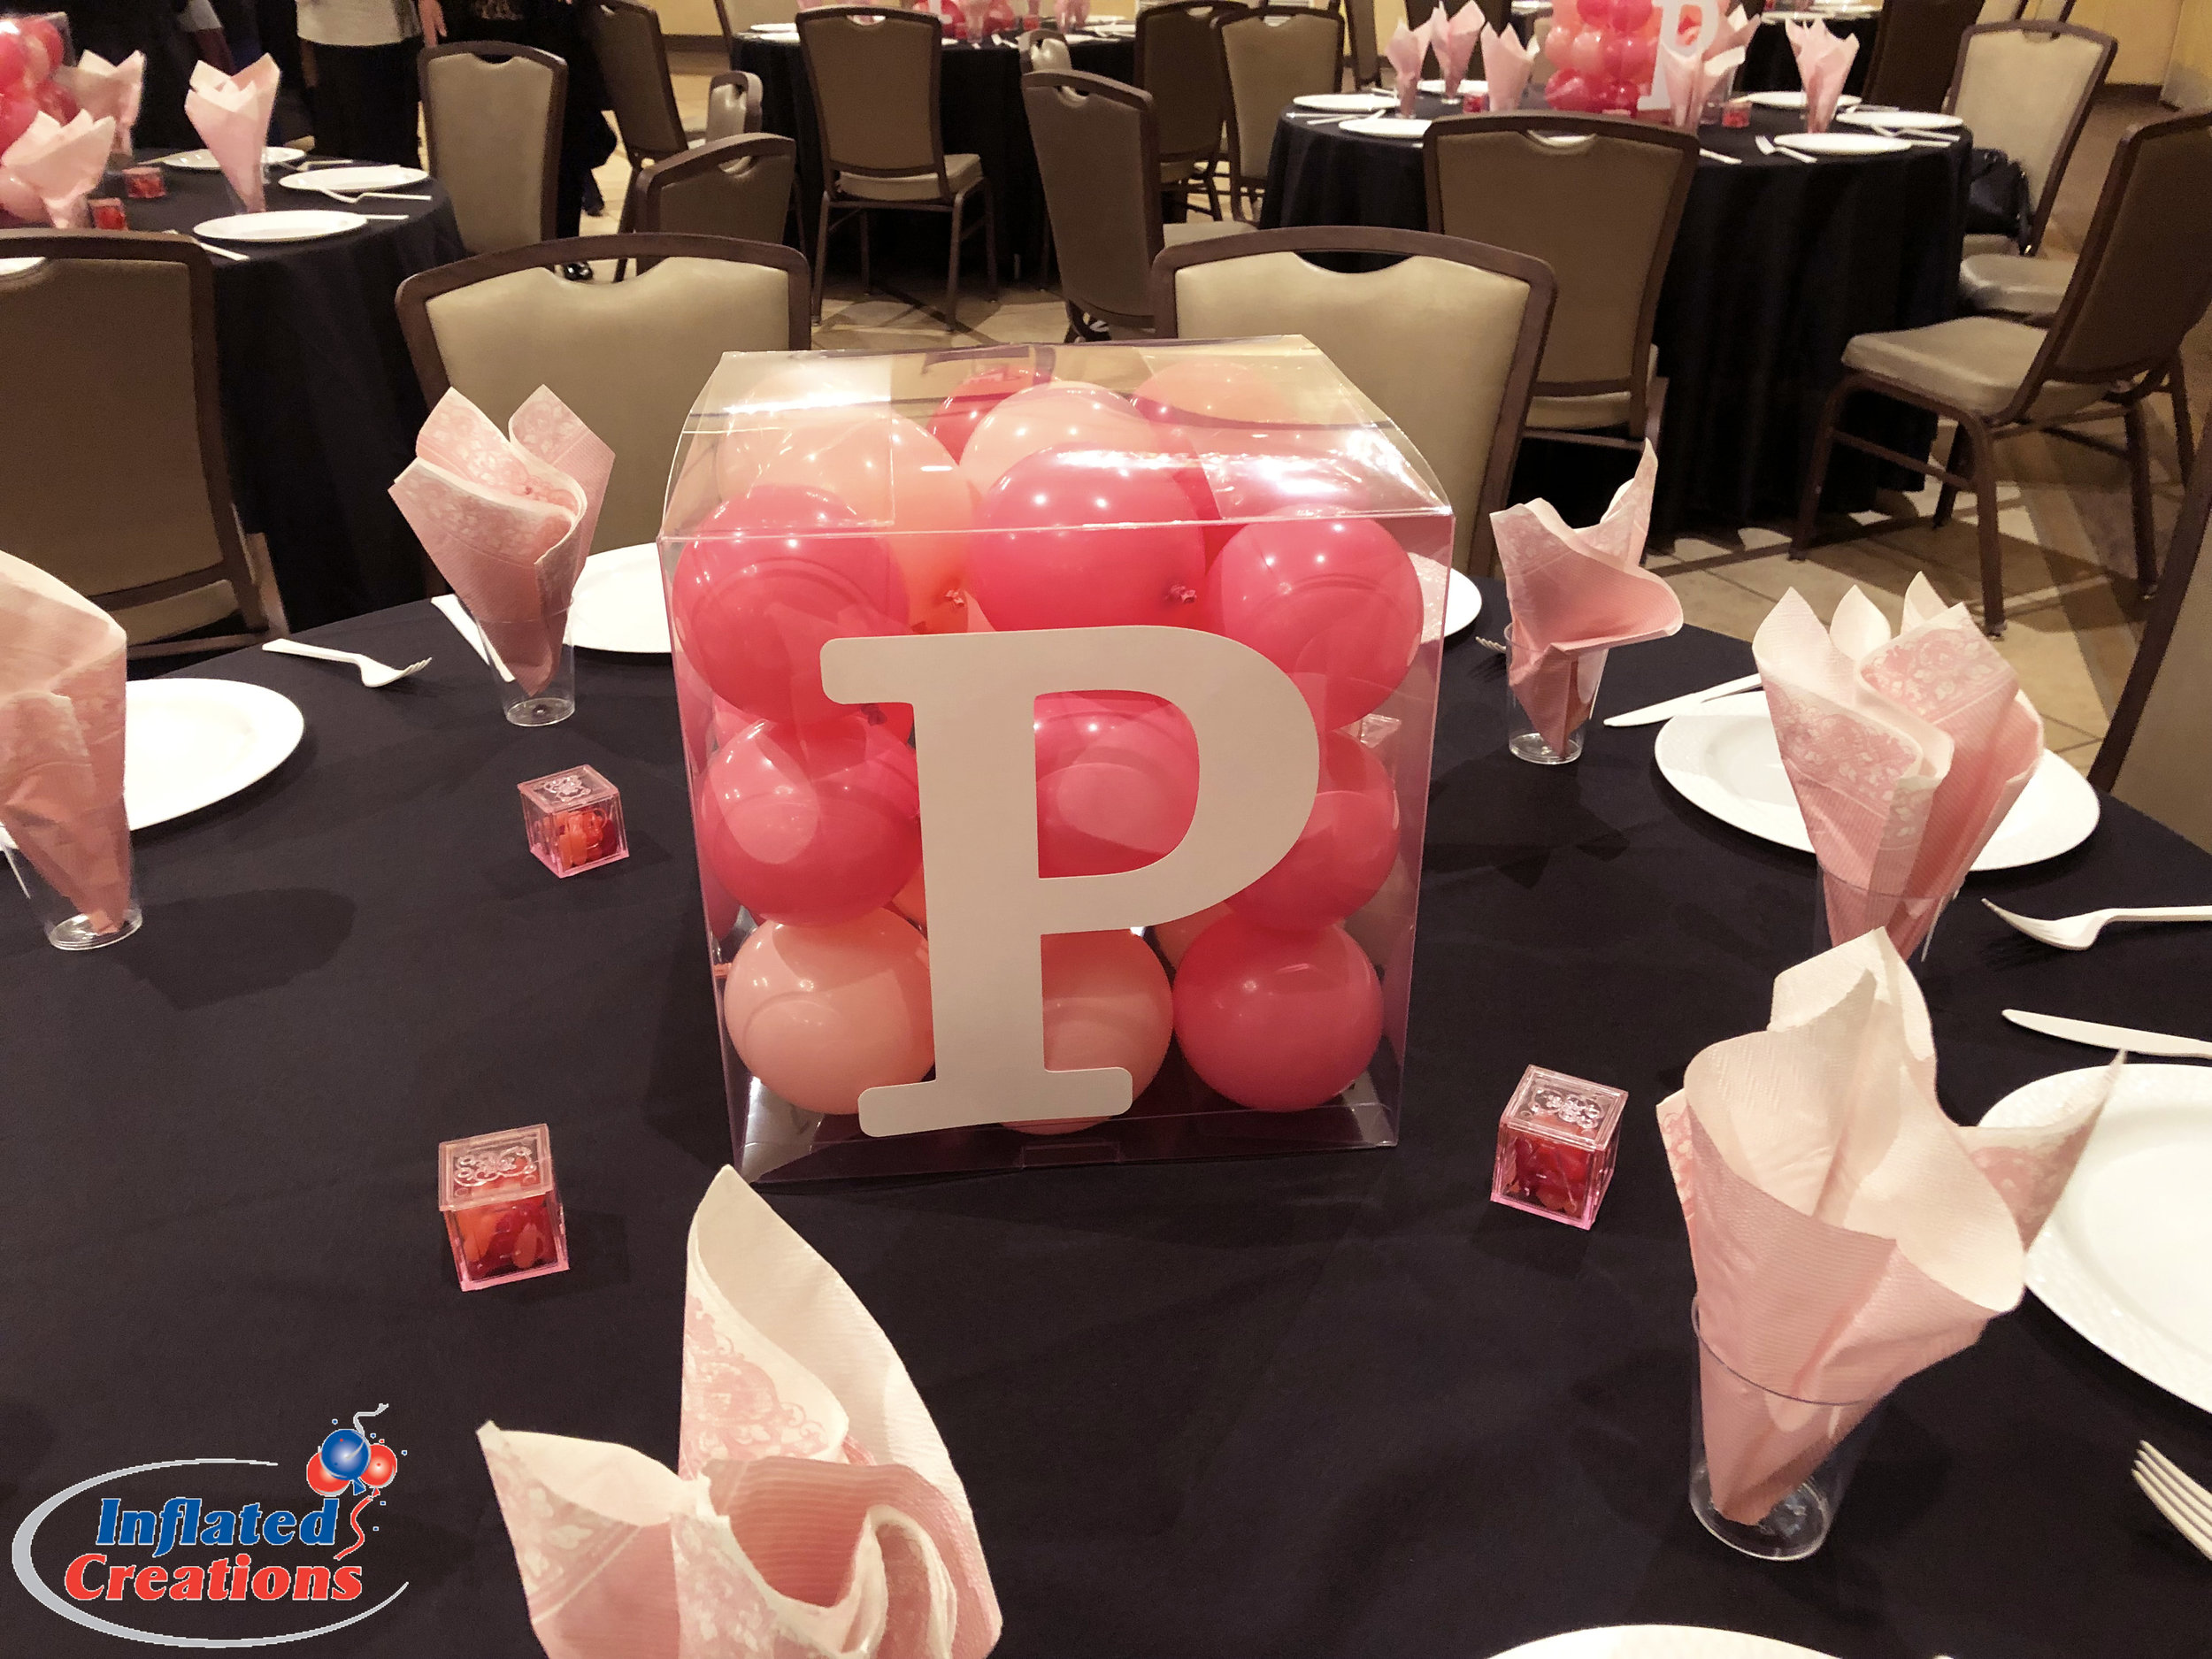 Centerpiece - Balloon Block